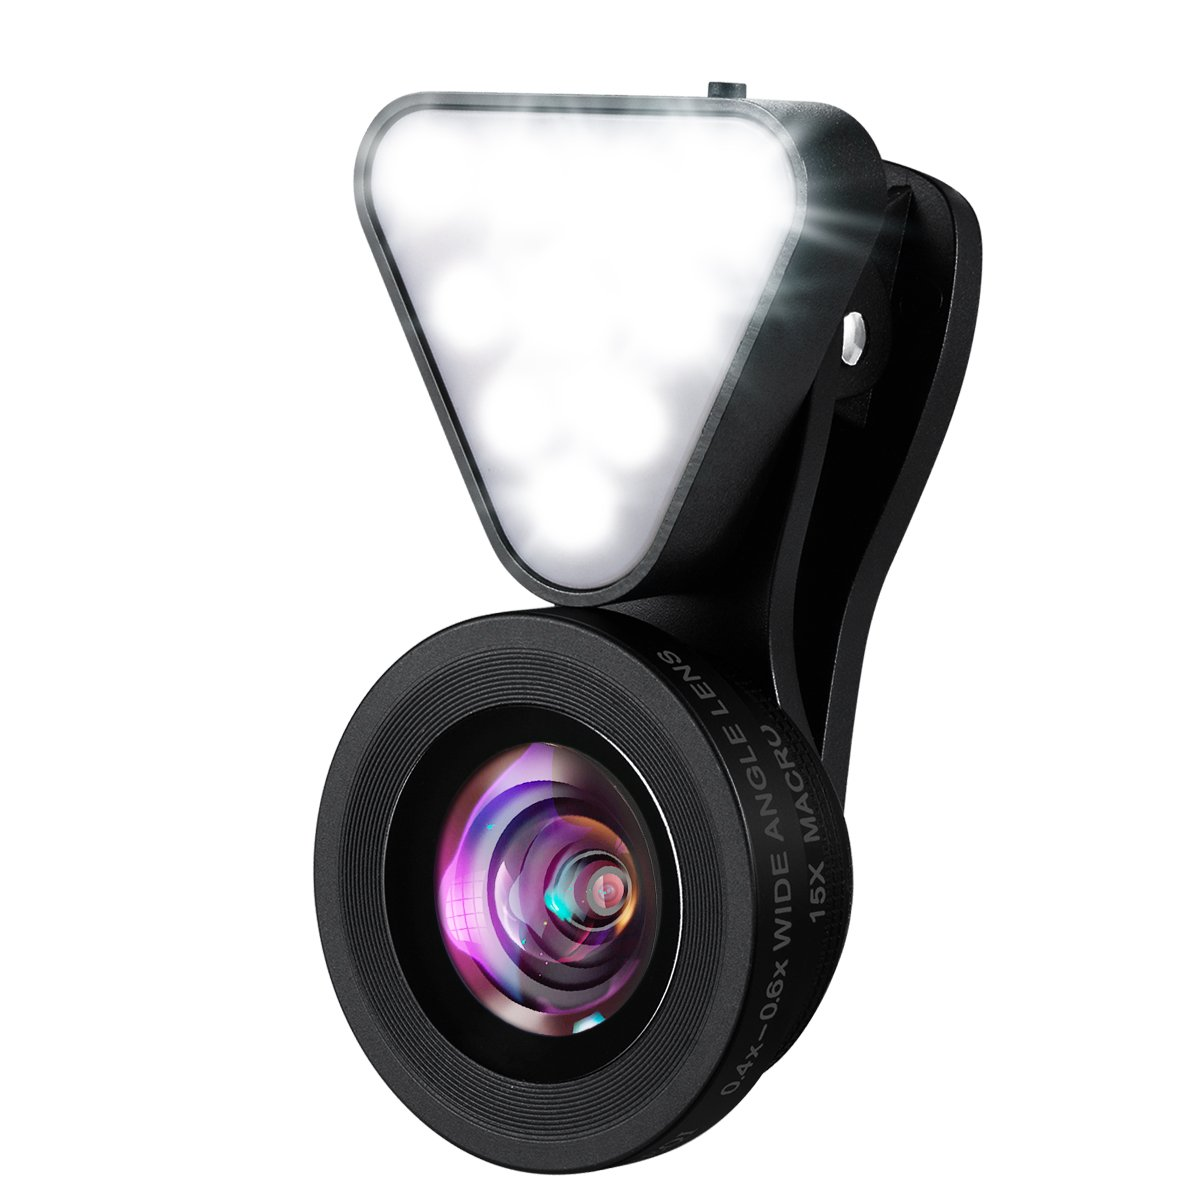 KeeKit 3 in 1 Cell Phone Lens Kit, 10 LED Rechargeable Beauty Selfie Light, 15X Macro Lens, 0.4X-0.6X Wide Angle Lens, 3 Adjustable Brightness Fill Light for iPhone, Samsung & Most Smartphones by KeeKit